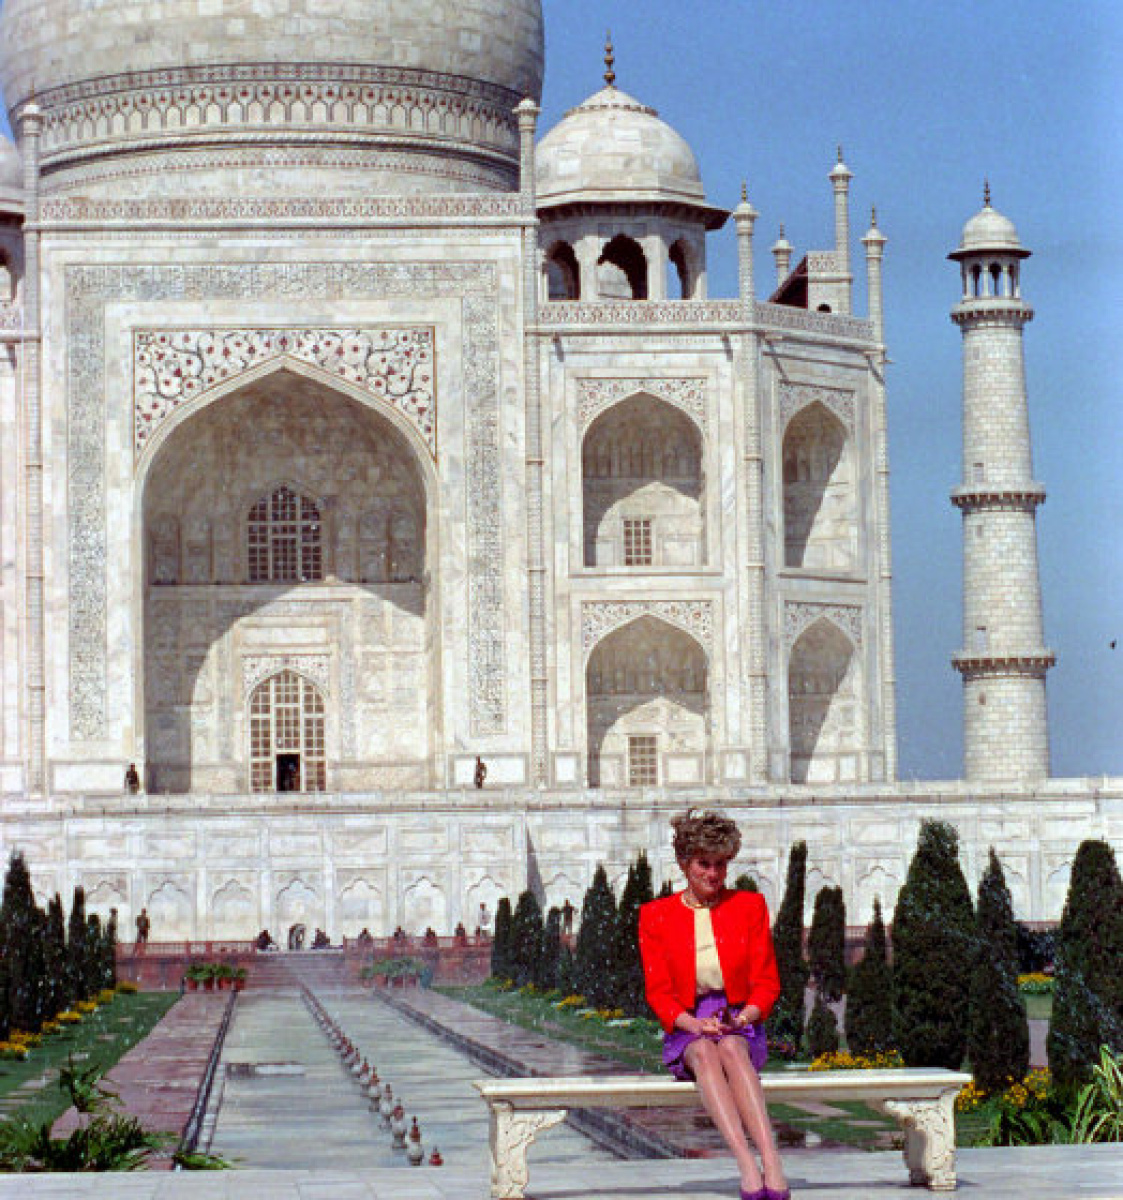 Diana, Princess of Wales, posed in front of the Taj Mahal  back in 1992 during her visit to India.